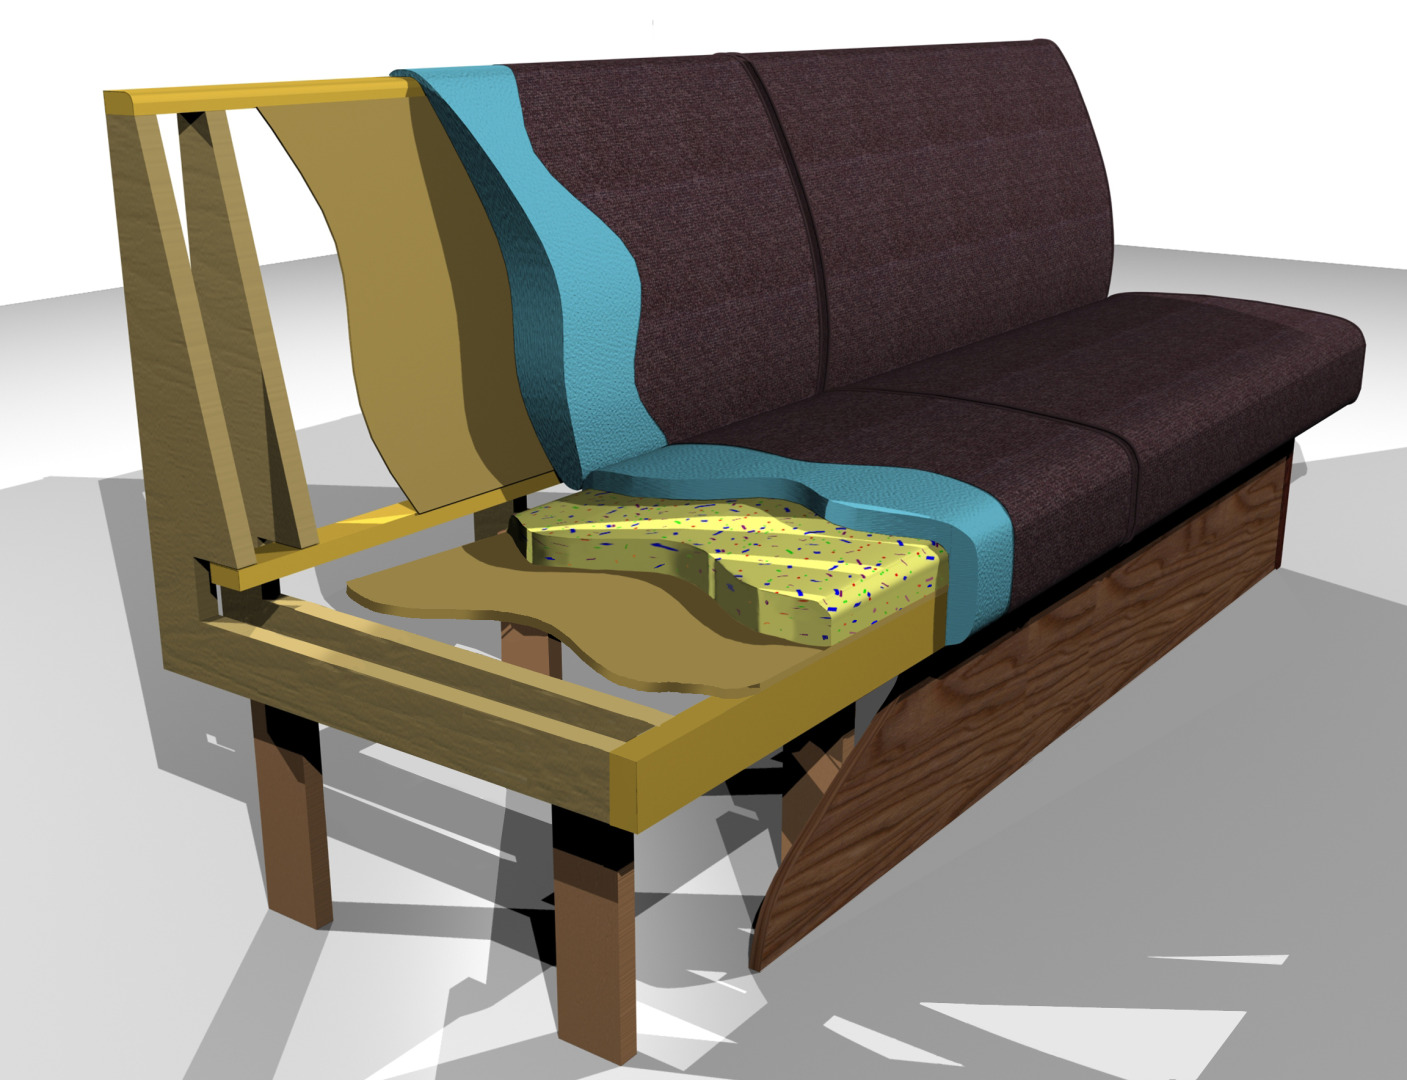 3D CAD Visual - Sprung Based Seating